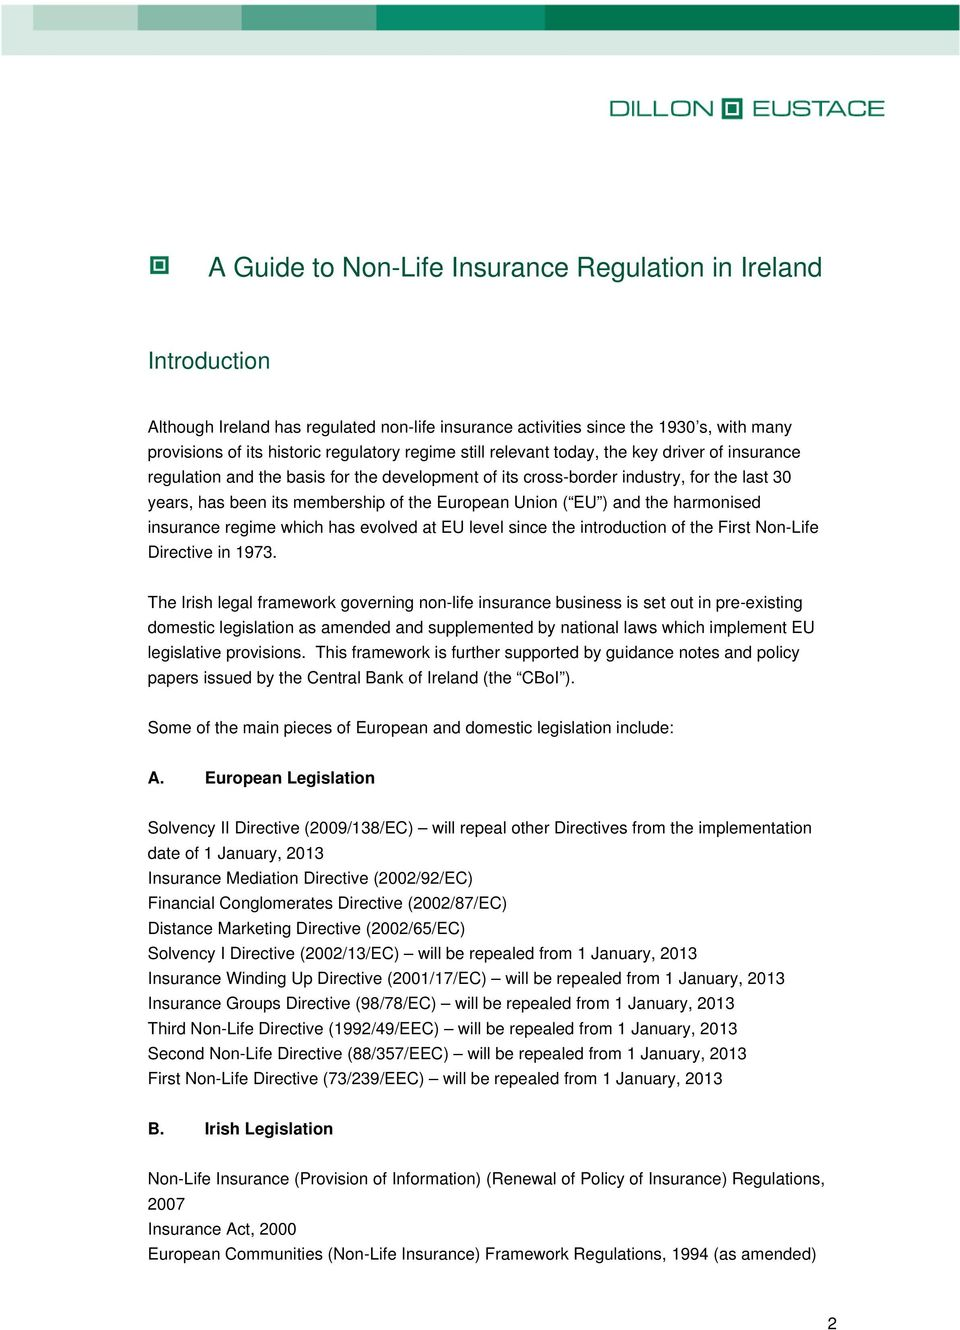 ) and the harmonised insurance regime which has evolved at EU level since the introduction of the First Non-Life Directive in 1973.